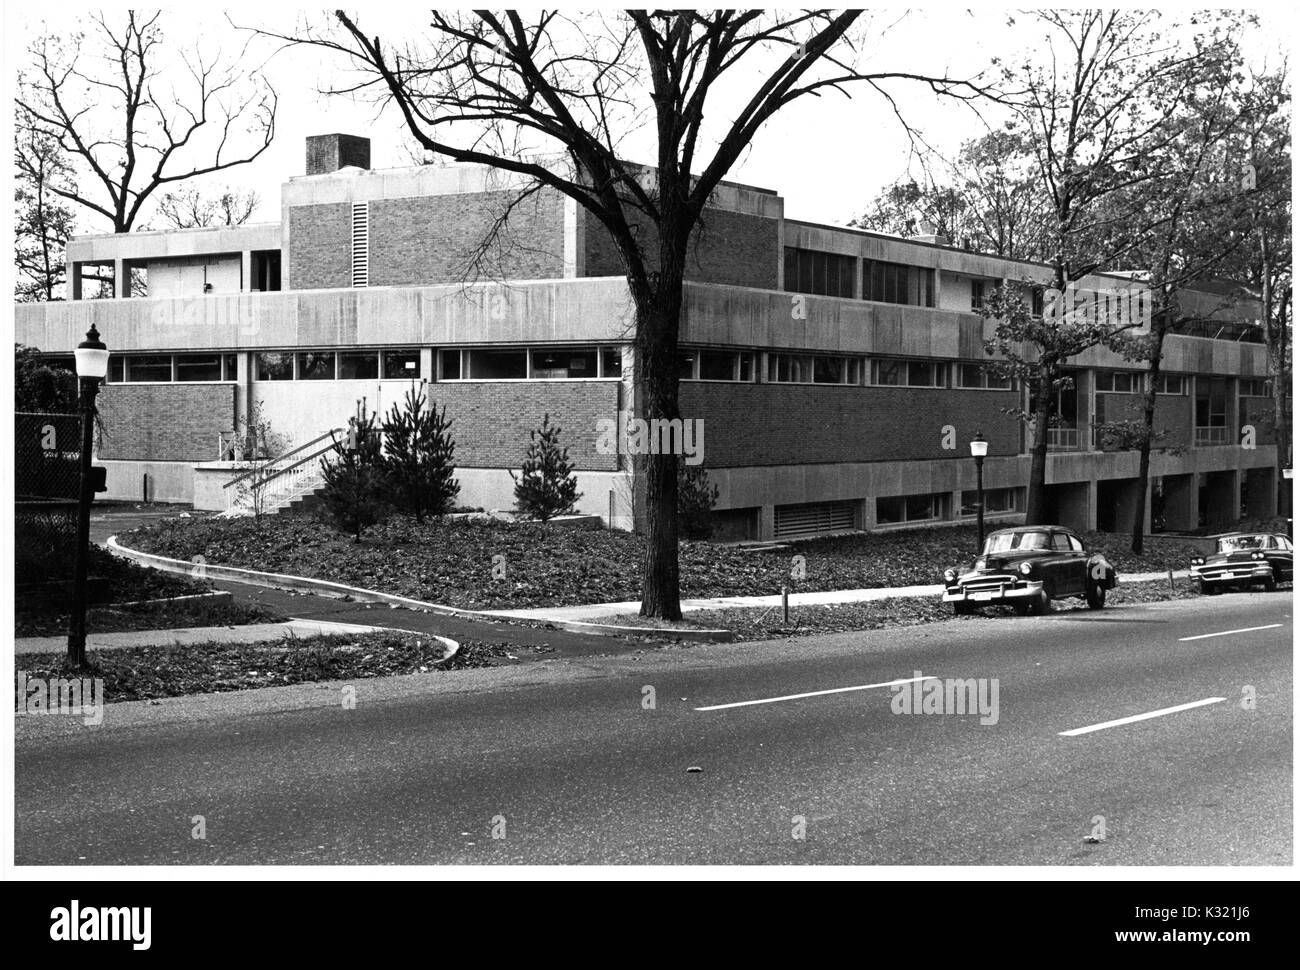 Exterior of the Department of Embryology for the Carnegie Institution for Science, a research organization, on the Homewood campus of Johns Hopkins University in Baltimore, Maryland, November 9, 1961. - Stock Image